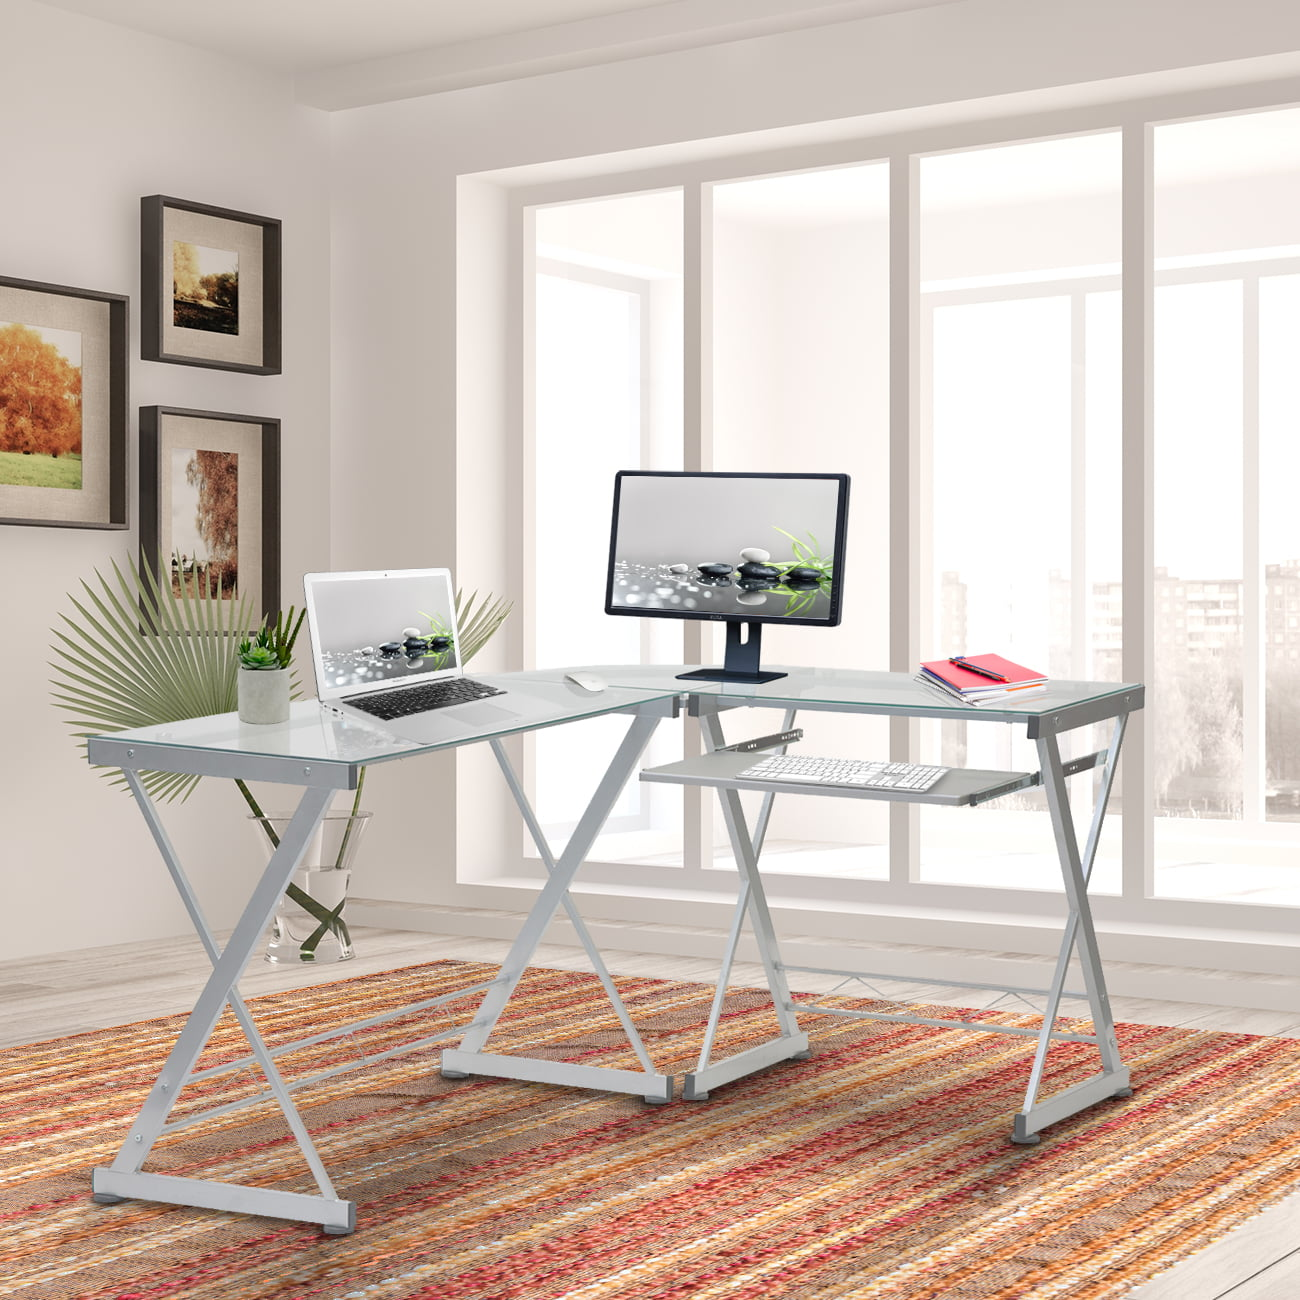 Techni Mobili L Shaped Tempered Glass Top Computer Desk With Pull